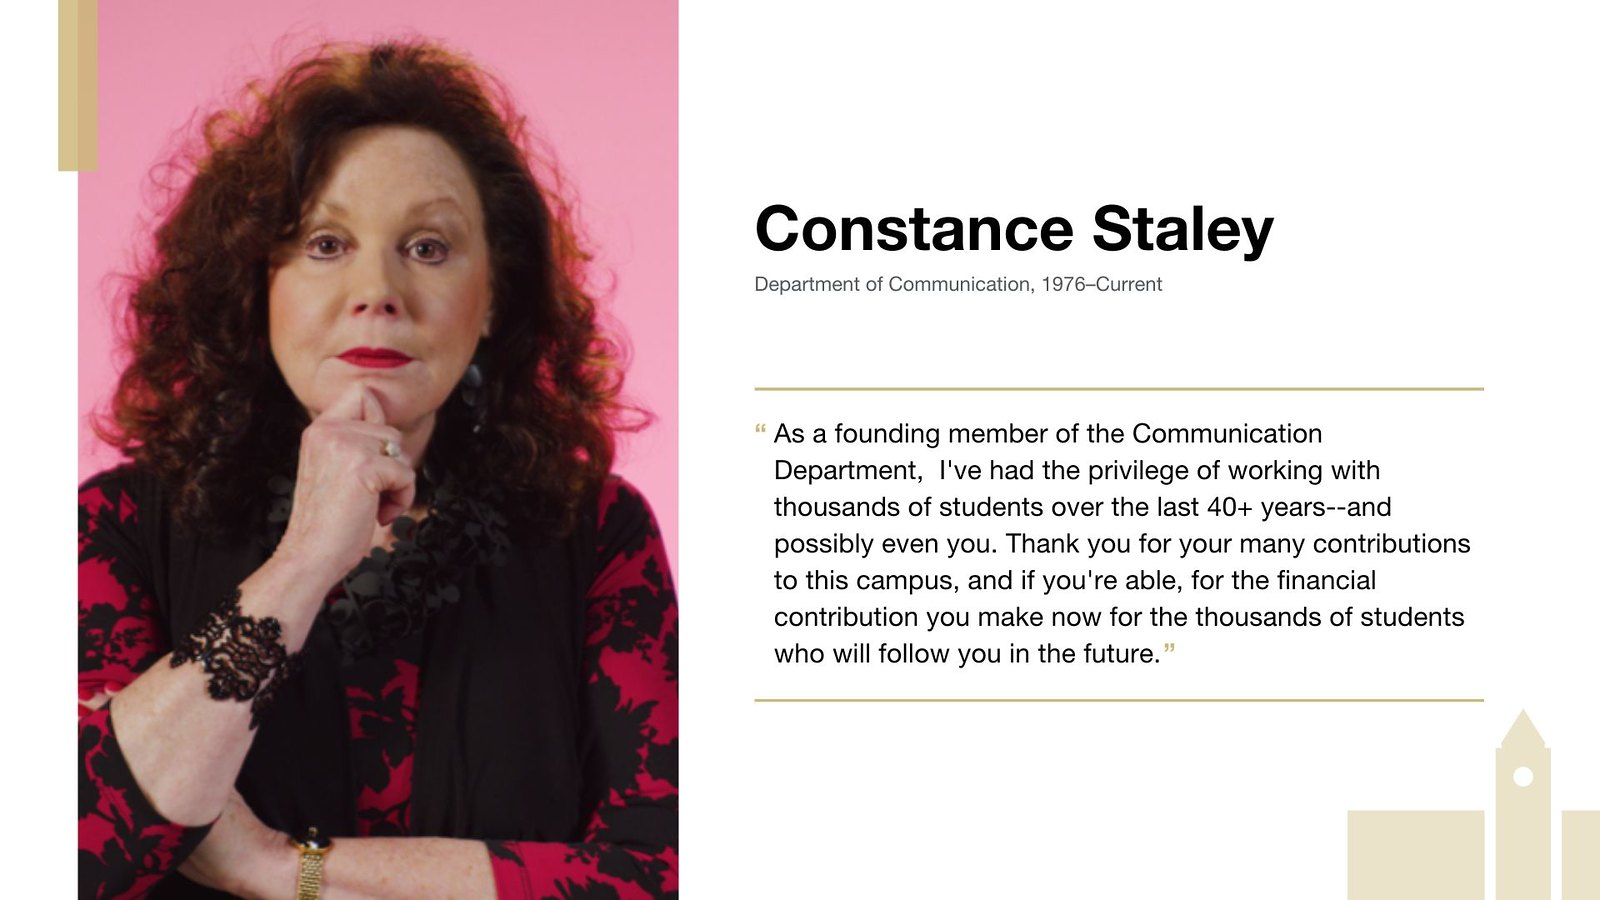 12-Constance Staley